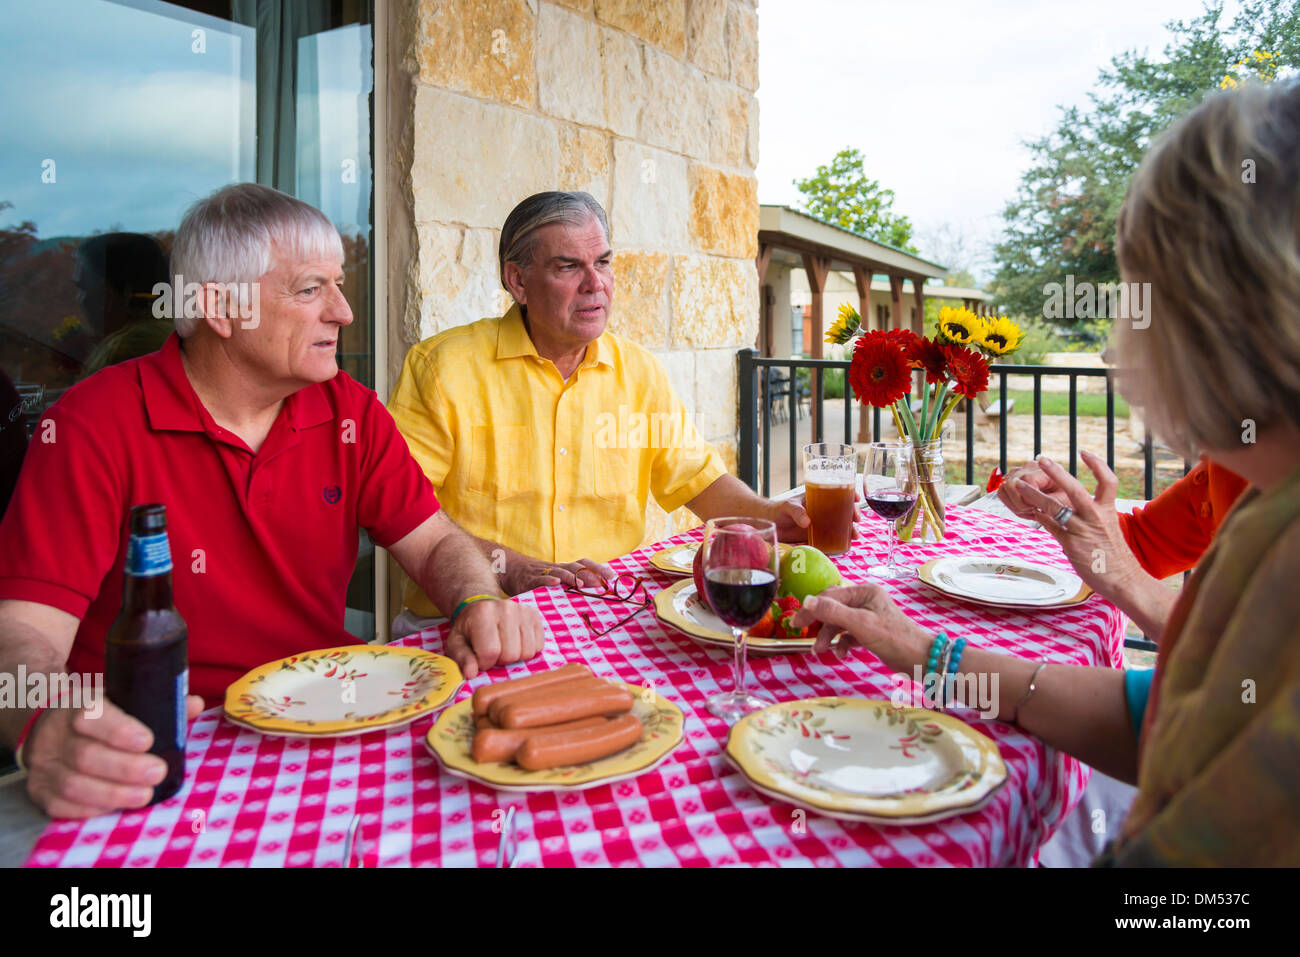 Two retired couples at a backyard barbecue party. Food and drinks, like fresh fruit, sausages, beer and wine, on the table. - Stock Image